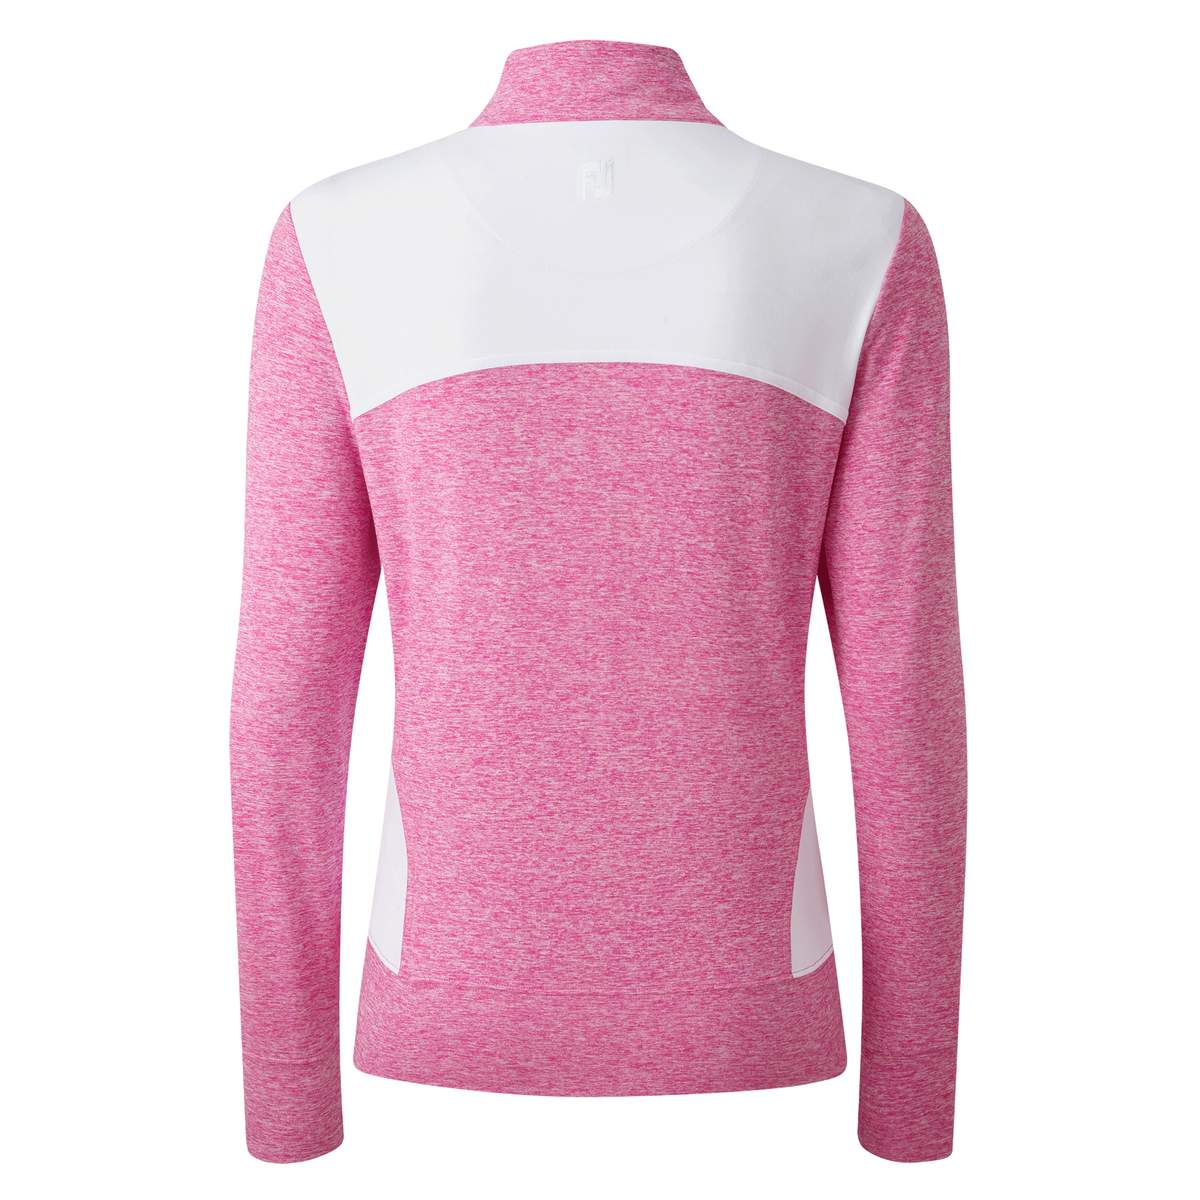 Women's Full-Zip Knit Midlayer